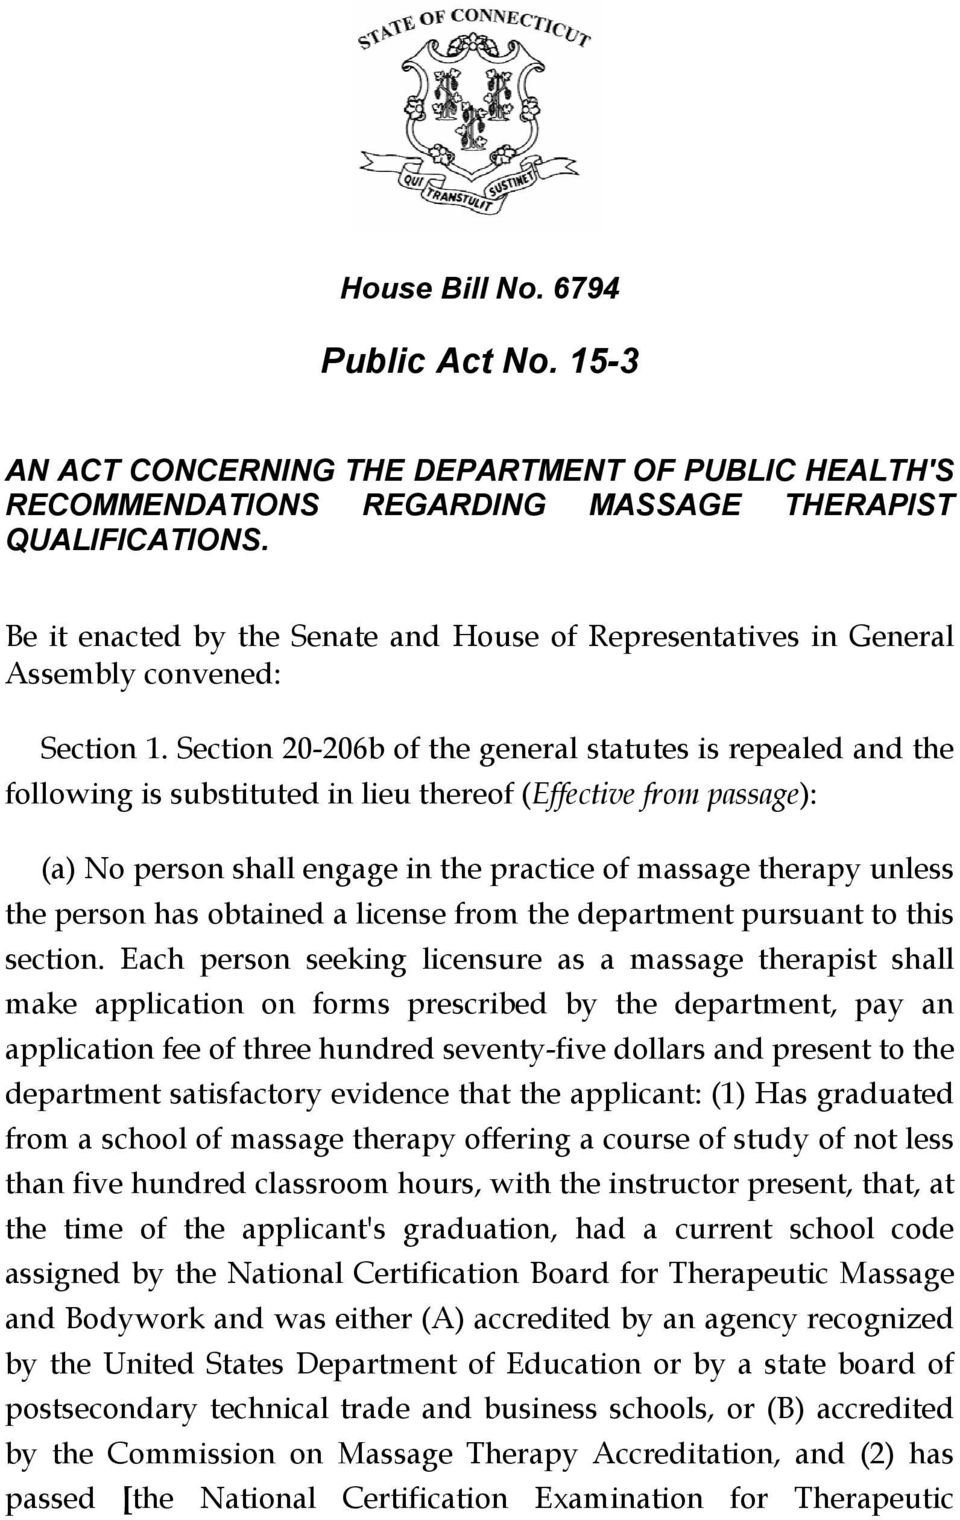 Section 20-206b of the general statutes is repealed and the following is substituted in lieu thereof (Effective from passage): (a) No person shall engage in the practice of massage therapy unless the